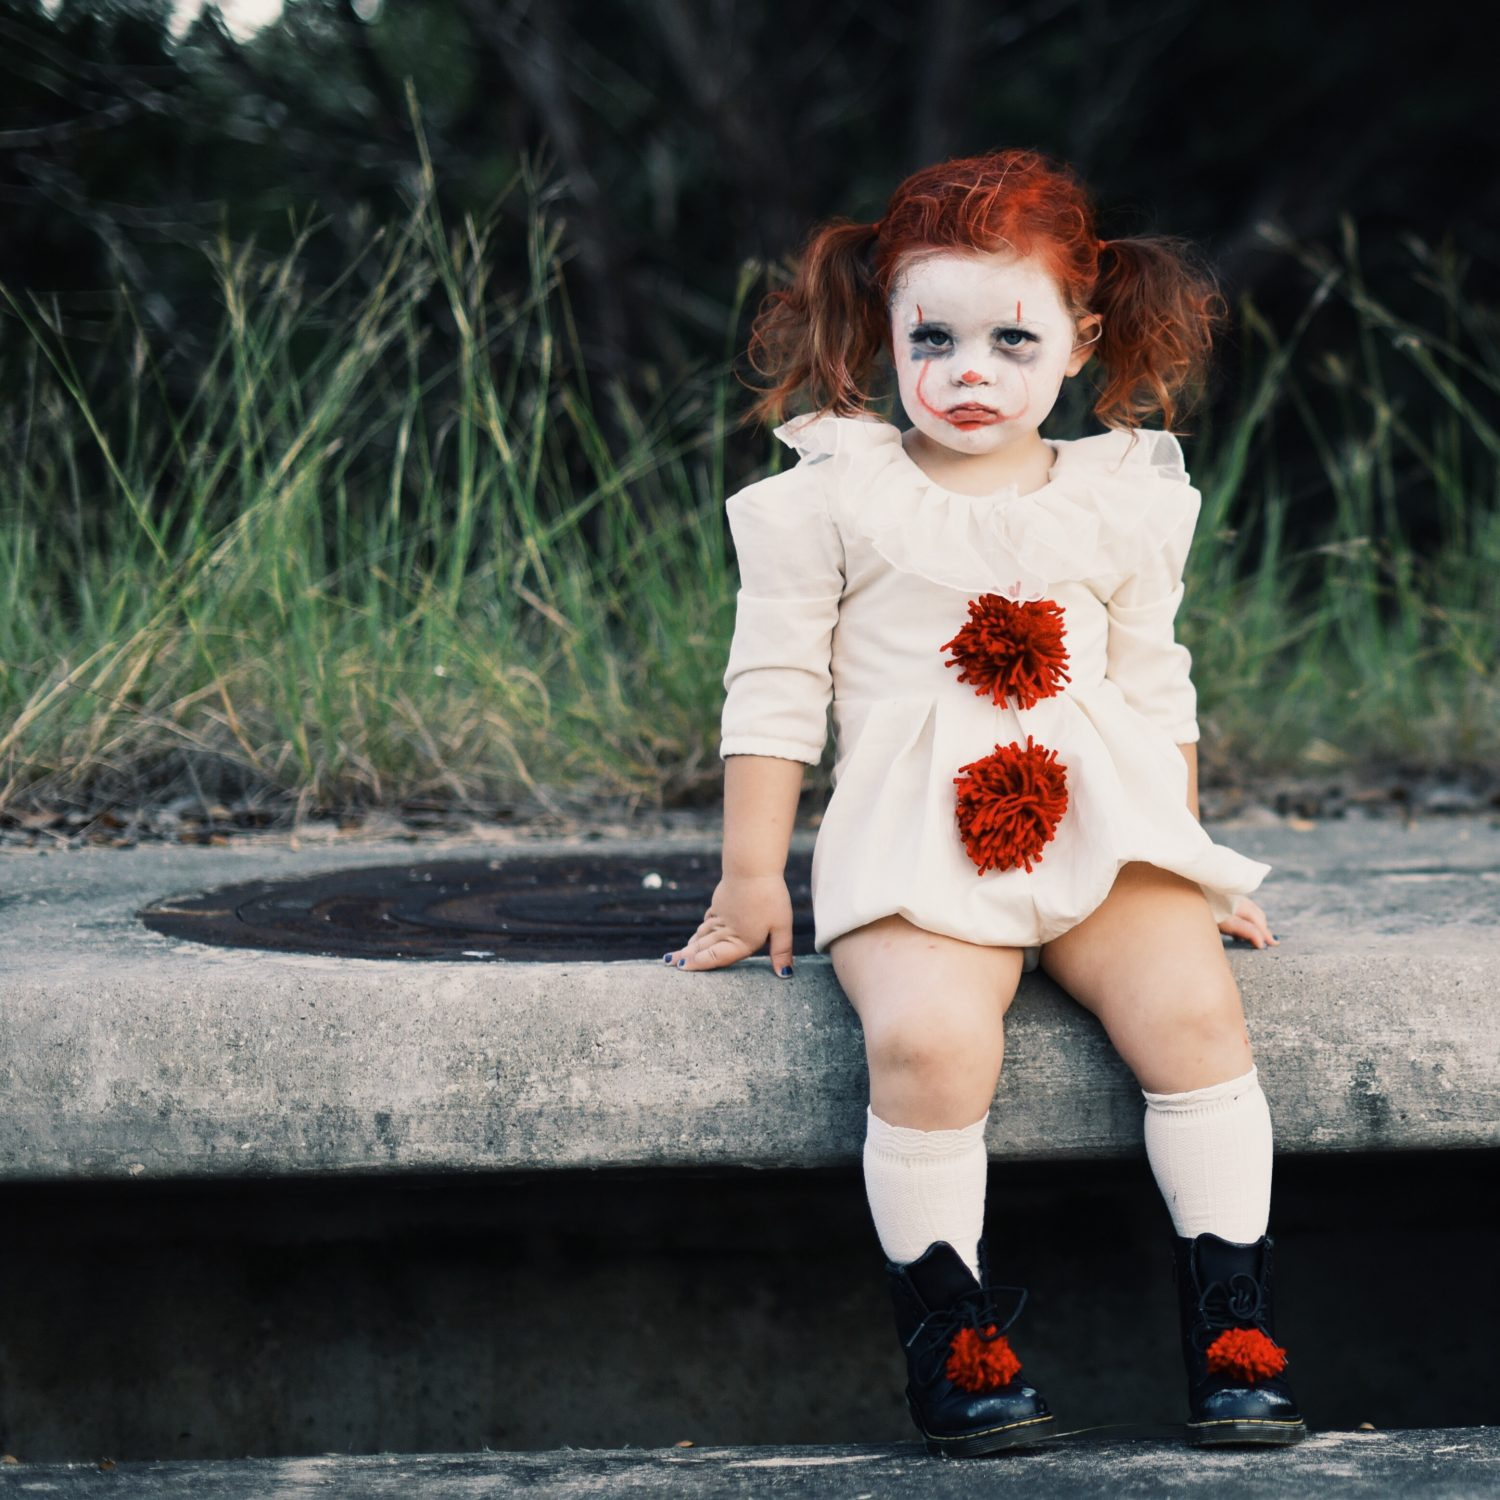 Halloween Costume Ideas for Kids , The Super Mom Life